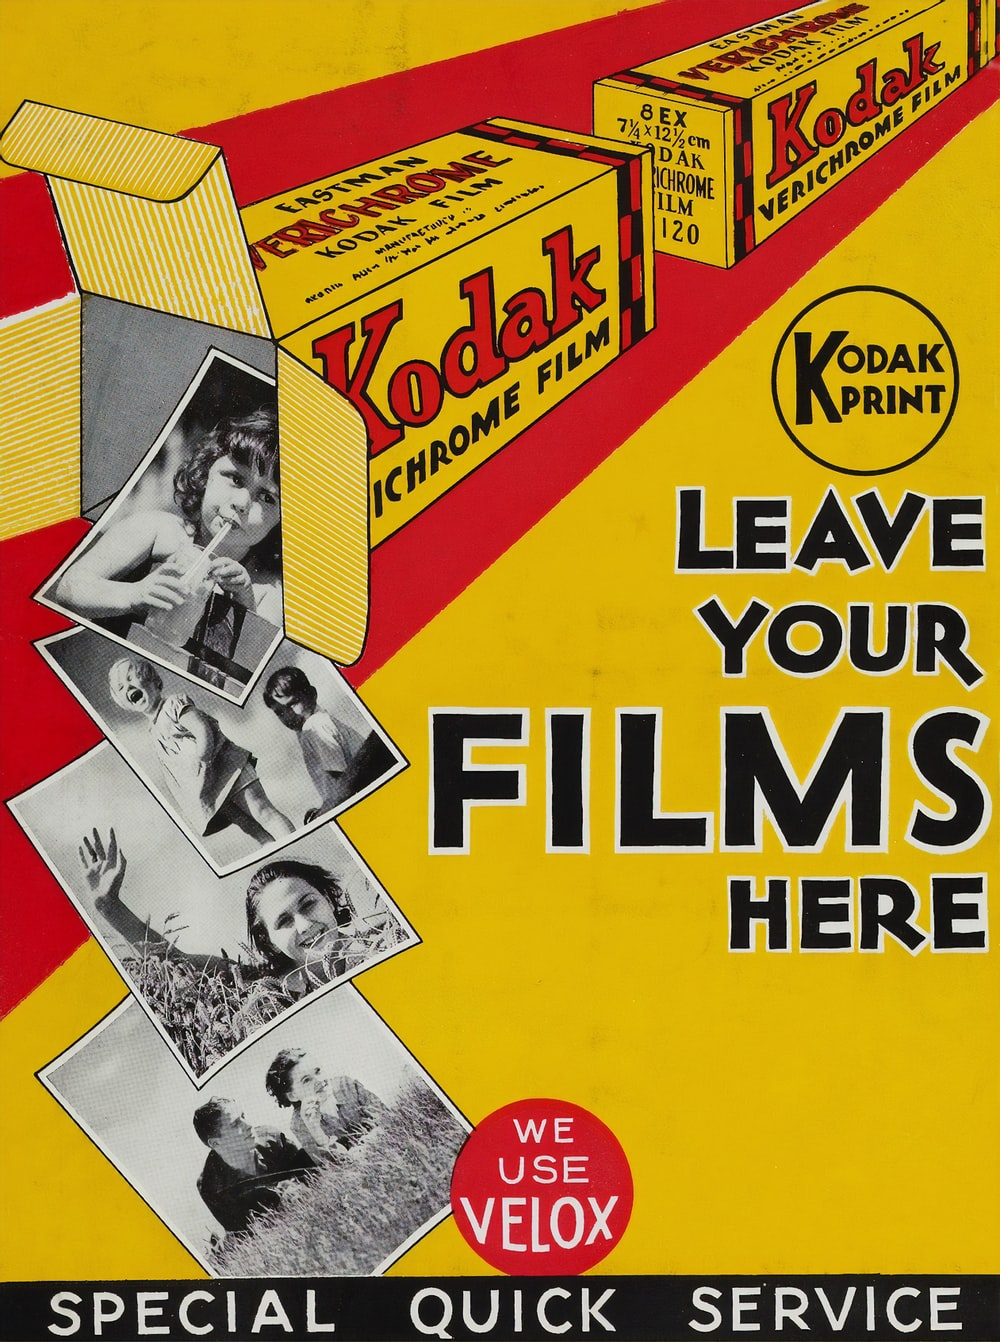 Kodak films box